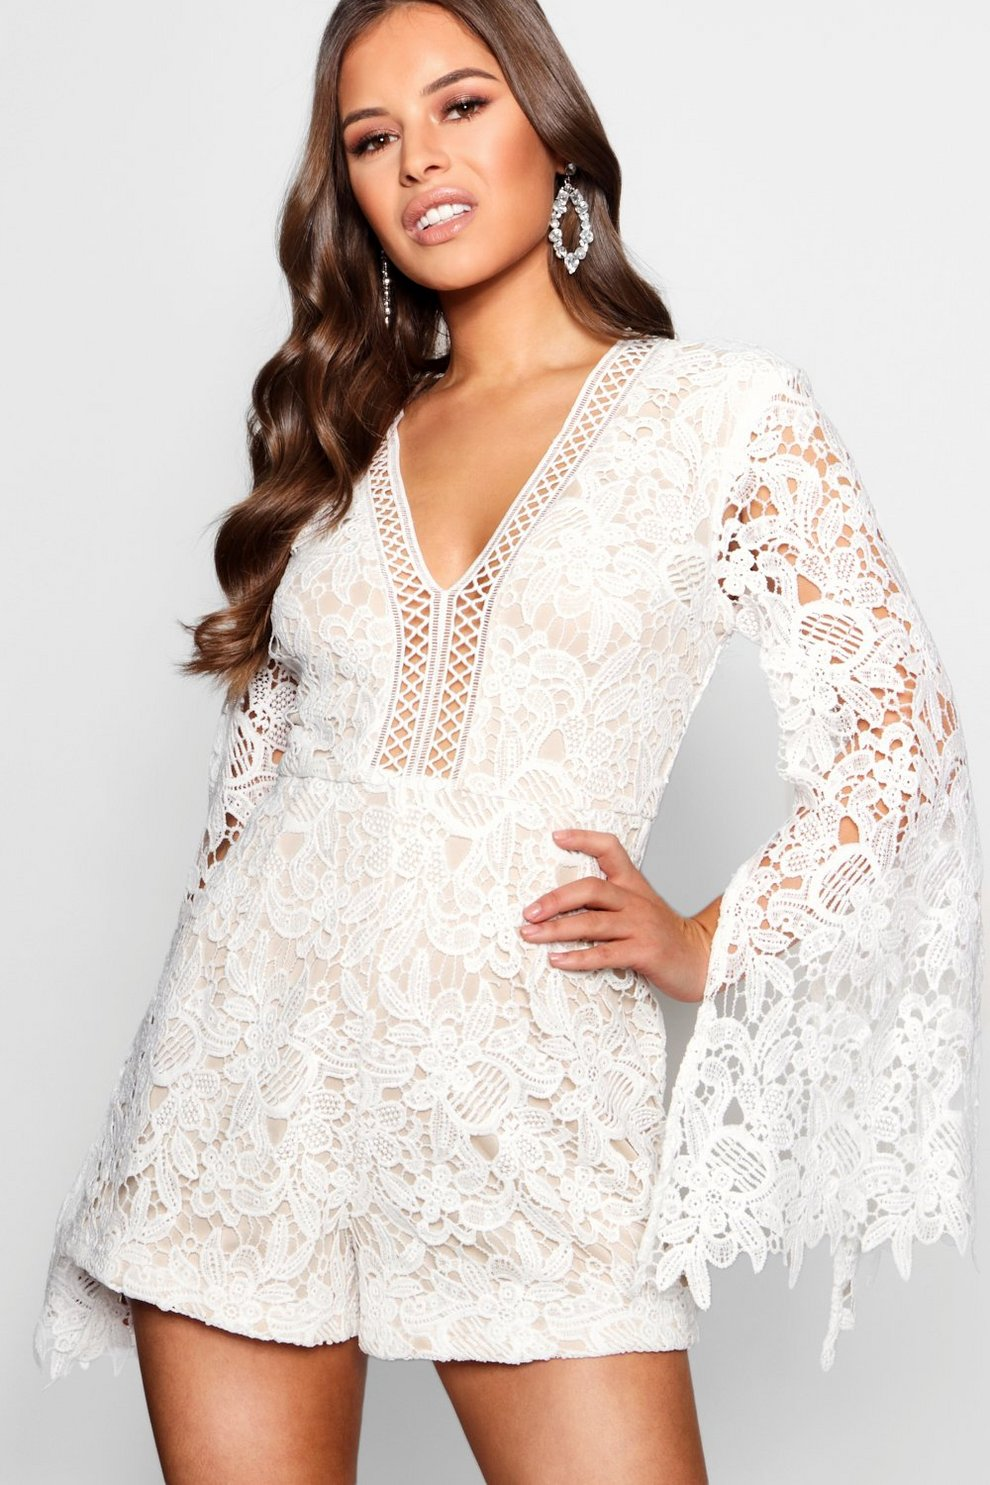 Shop Offer Cheap Online Sale With Mastercard Boohoo Petite Mandy Button Front Crochet Lace Playsuit M0dId5qhRJ